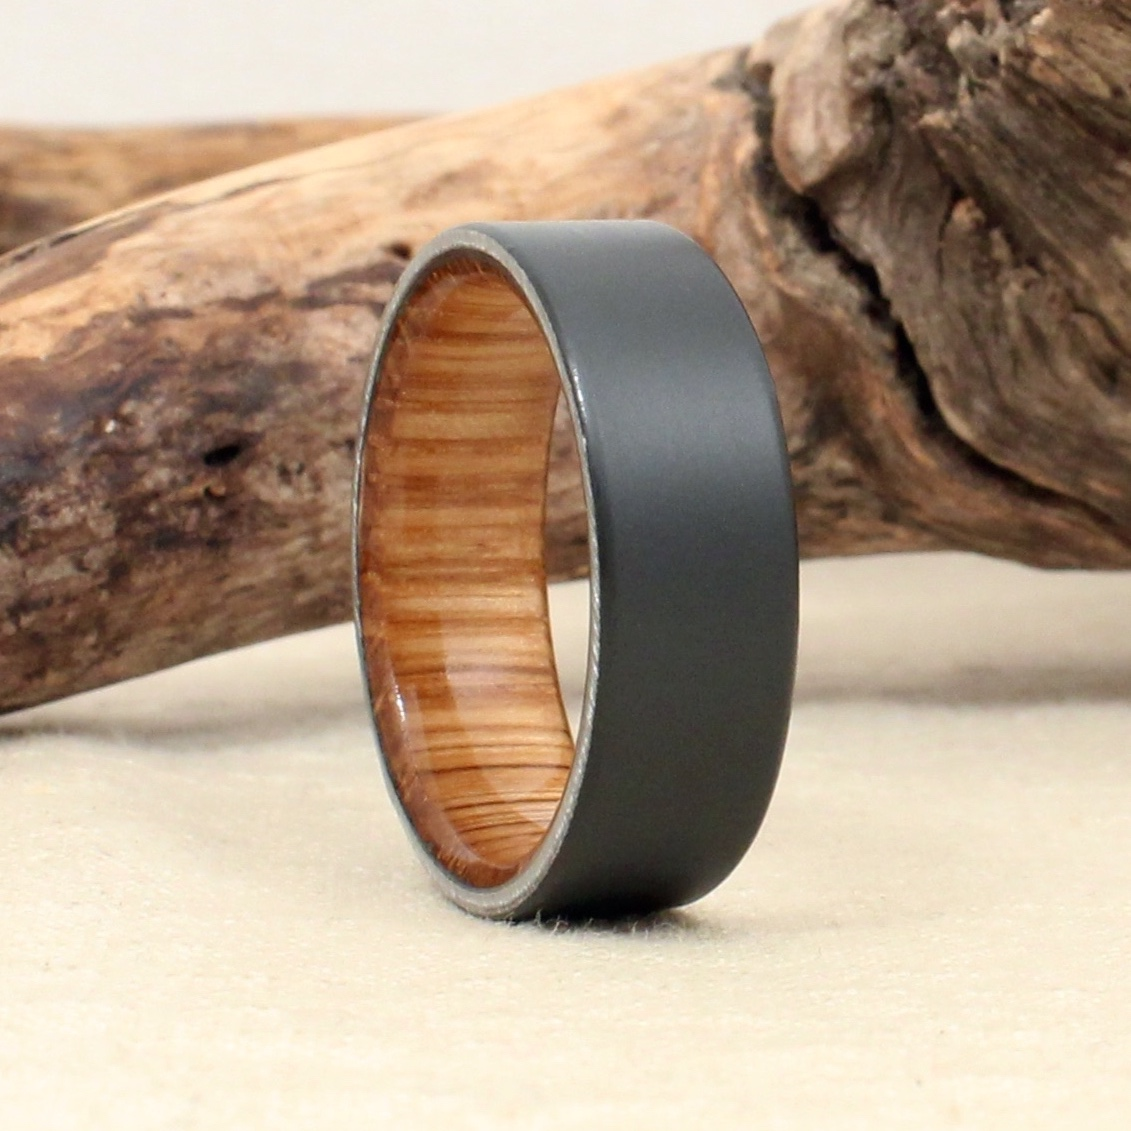 Sandblasted Black Zirconium and Balvenie Scotch Cask Ring